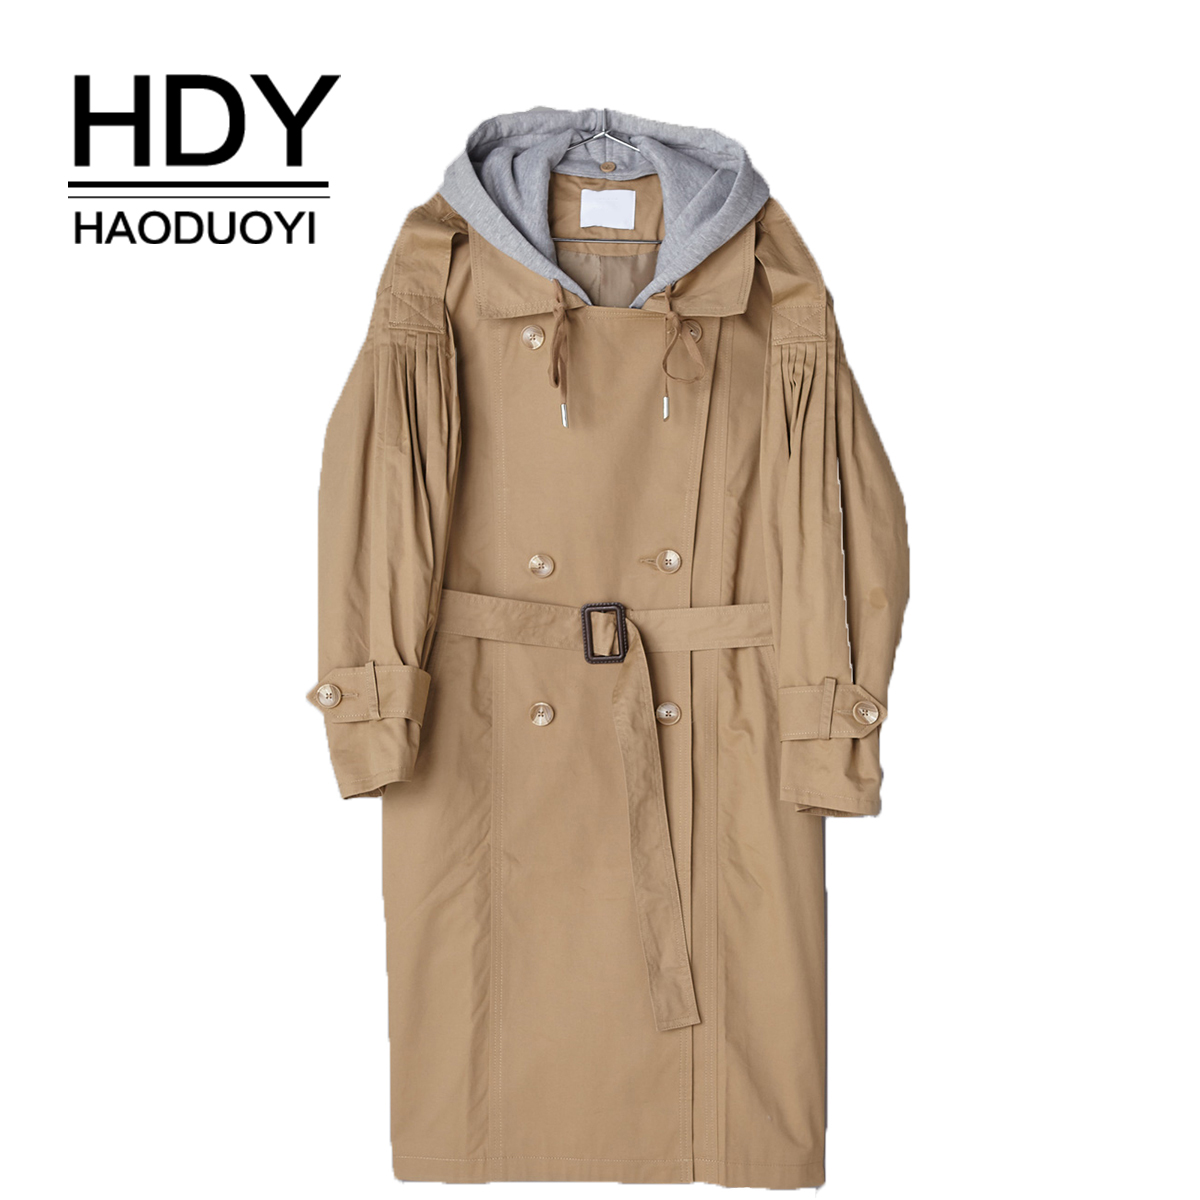 HDY Haoduoyi Pleated double-breasted loose lapel knit hooded   trench   coat